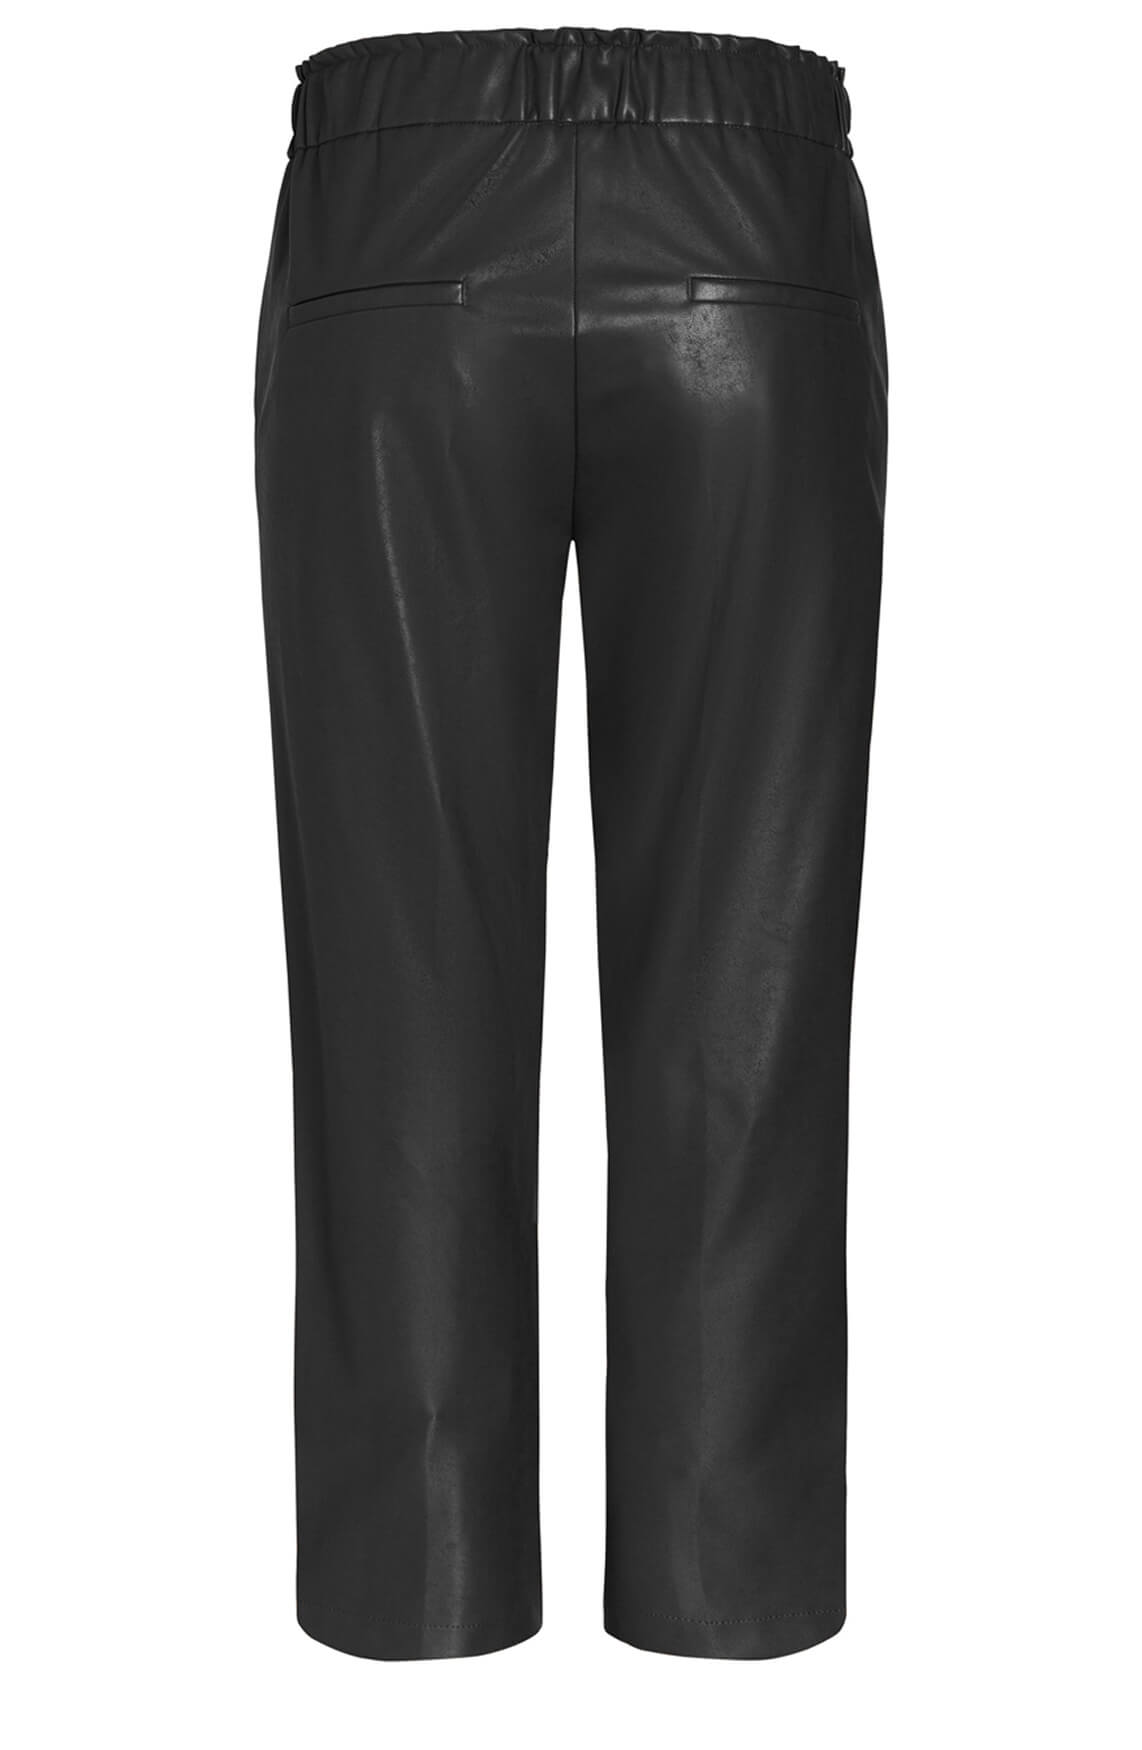 Cambio Dames Colette fake leather broek zwart